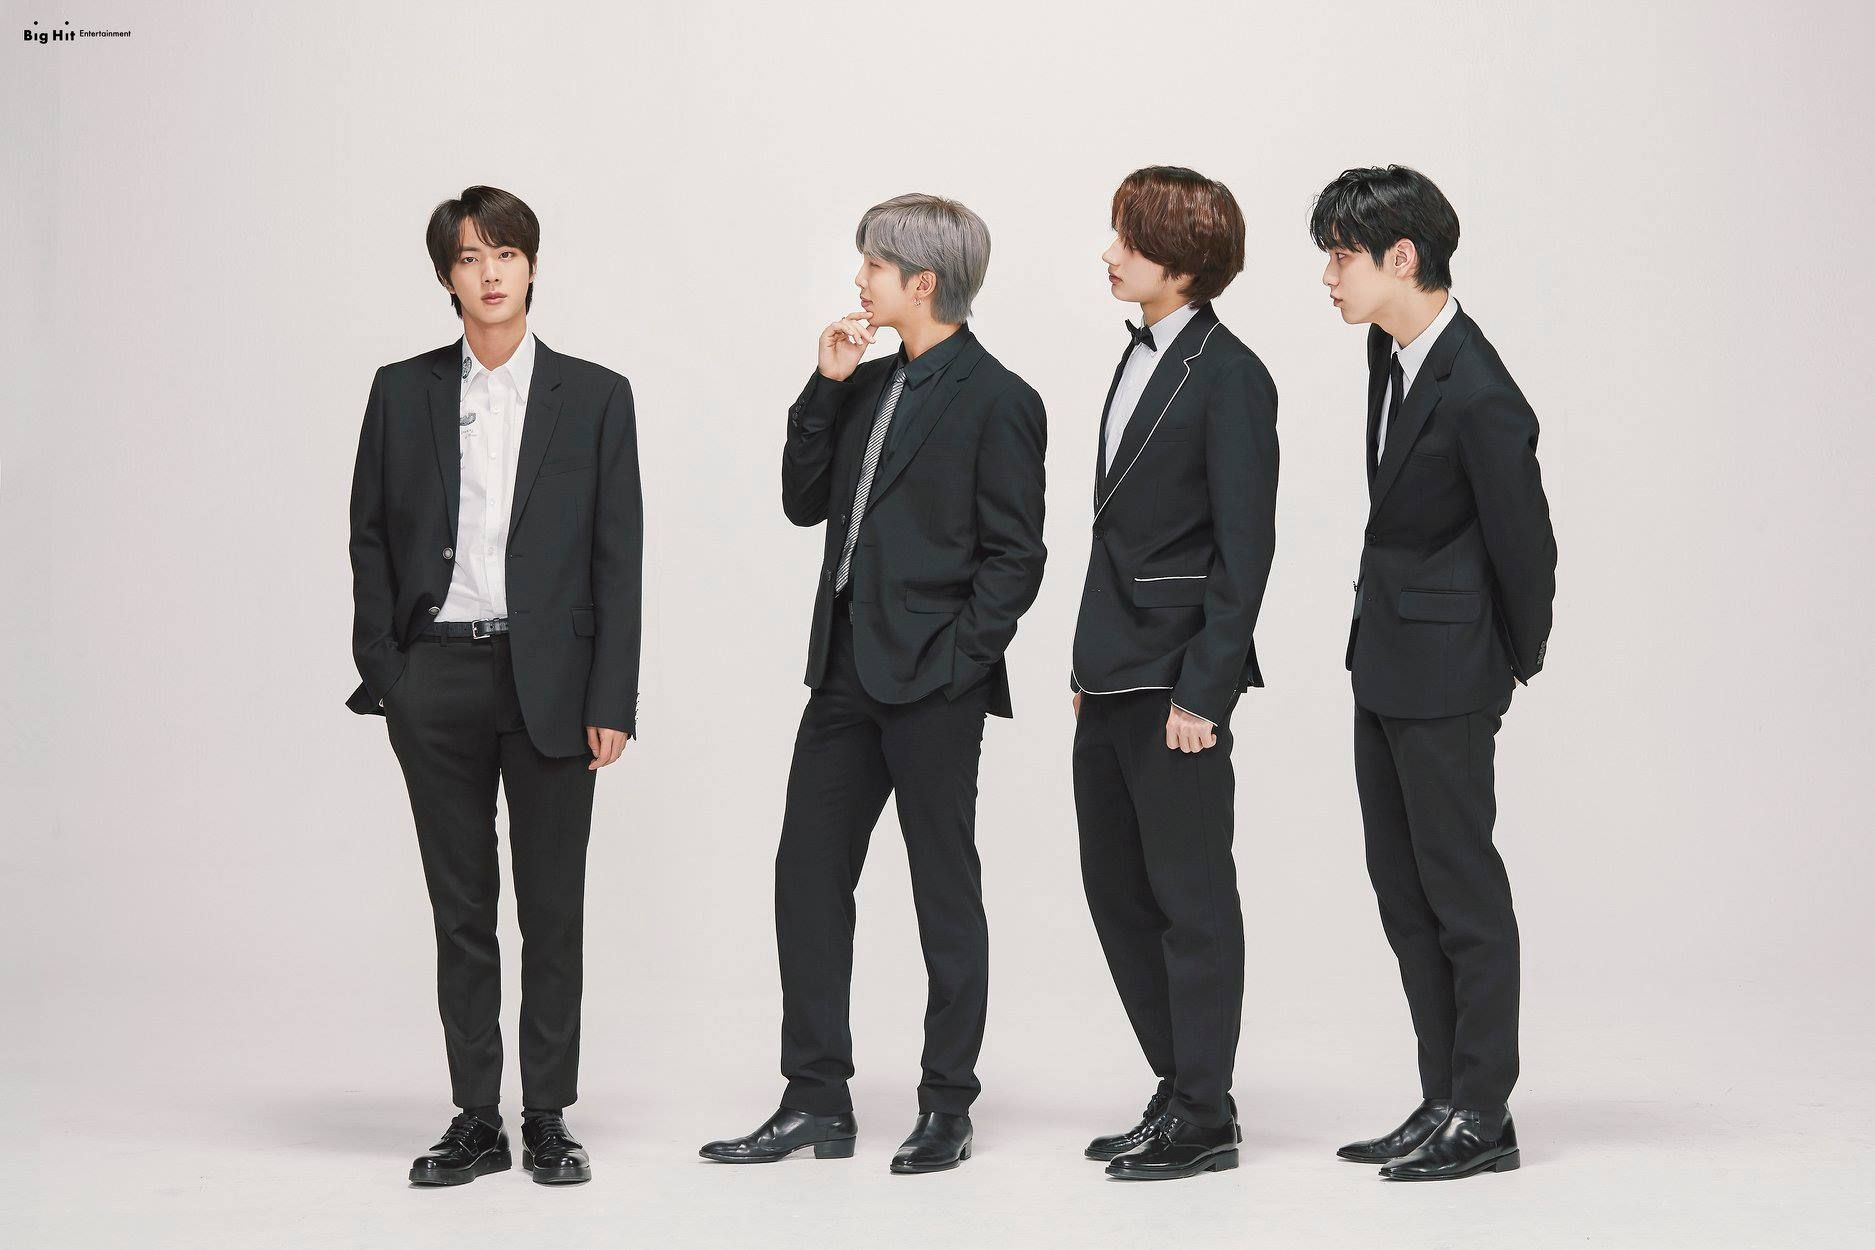 Bighit 15th Anniversary Bts Txt Lee Hyun Group Photos Hd Hr Entertainment Gambar Orang Bts